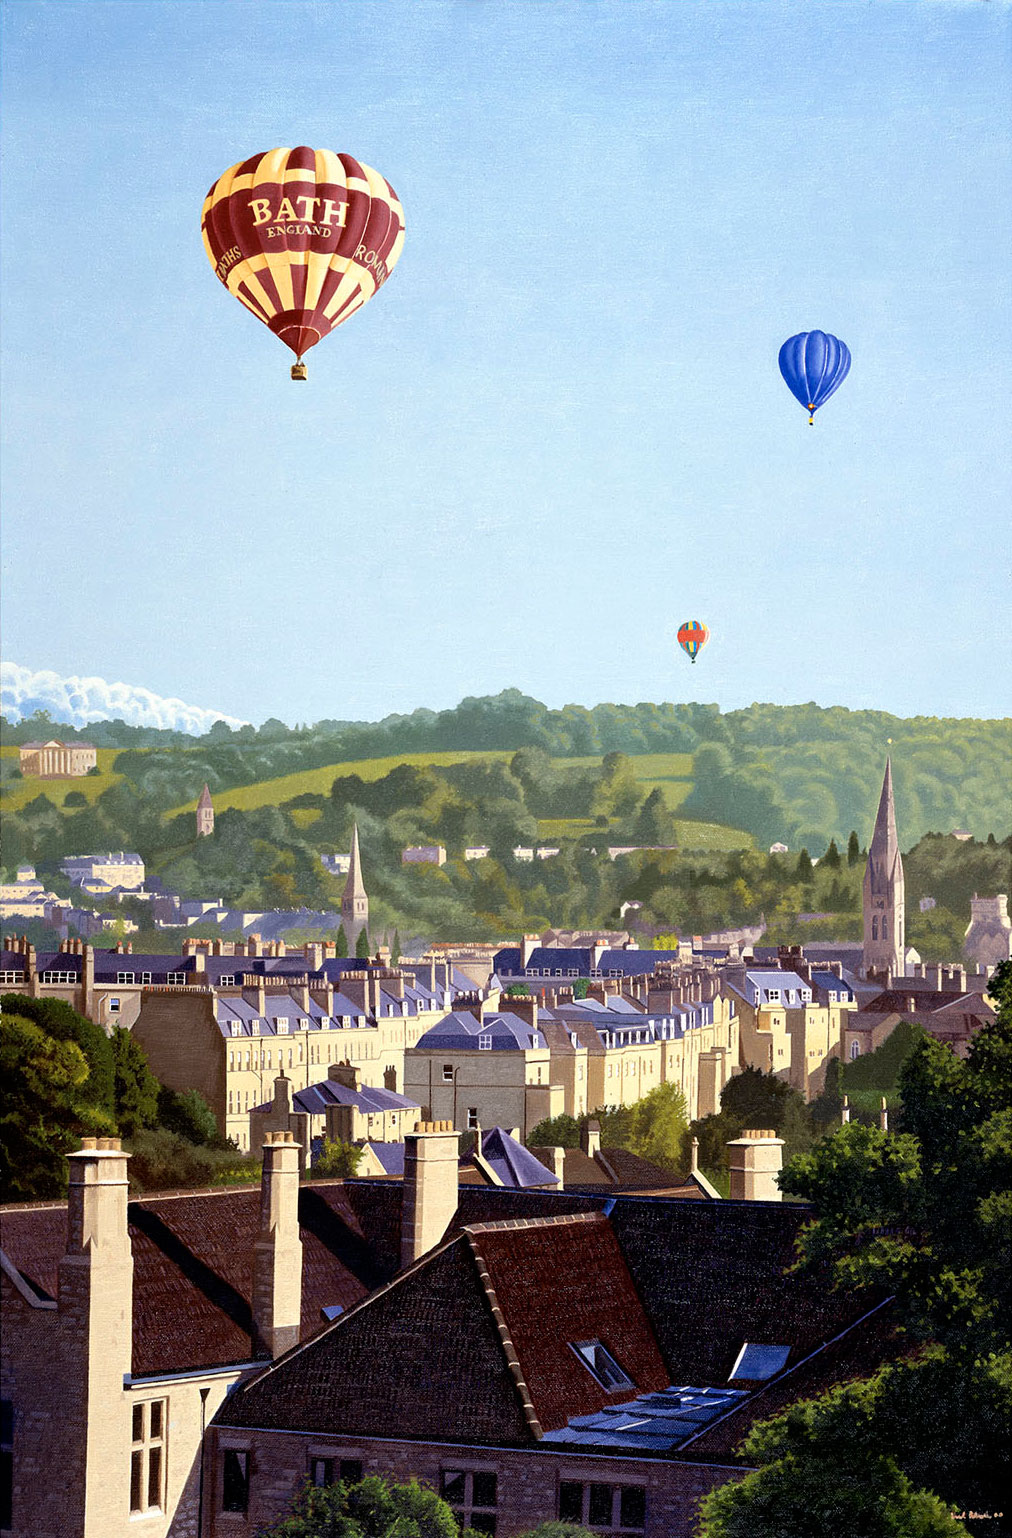 Balloons Over Bath by Nick Cudworth